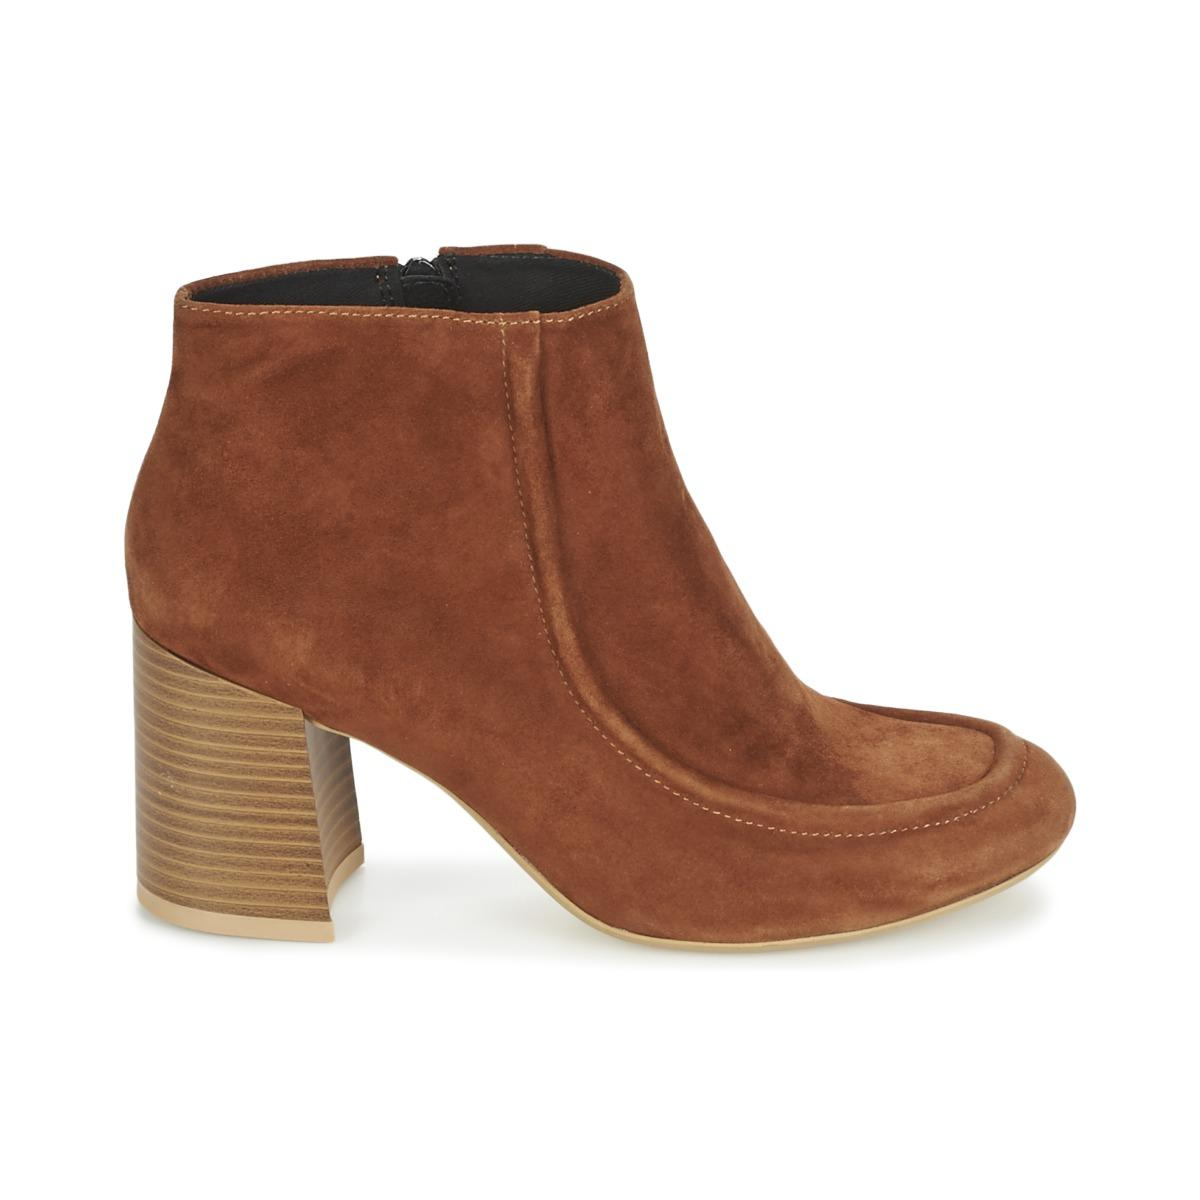 Vagabond Rubber Kaley Low Ankle Boots in Brown